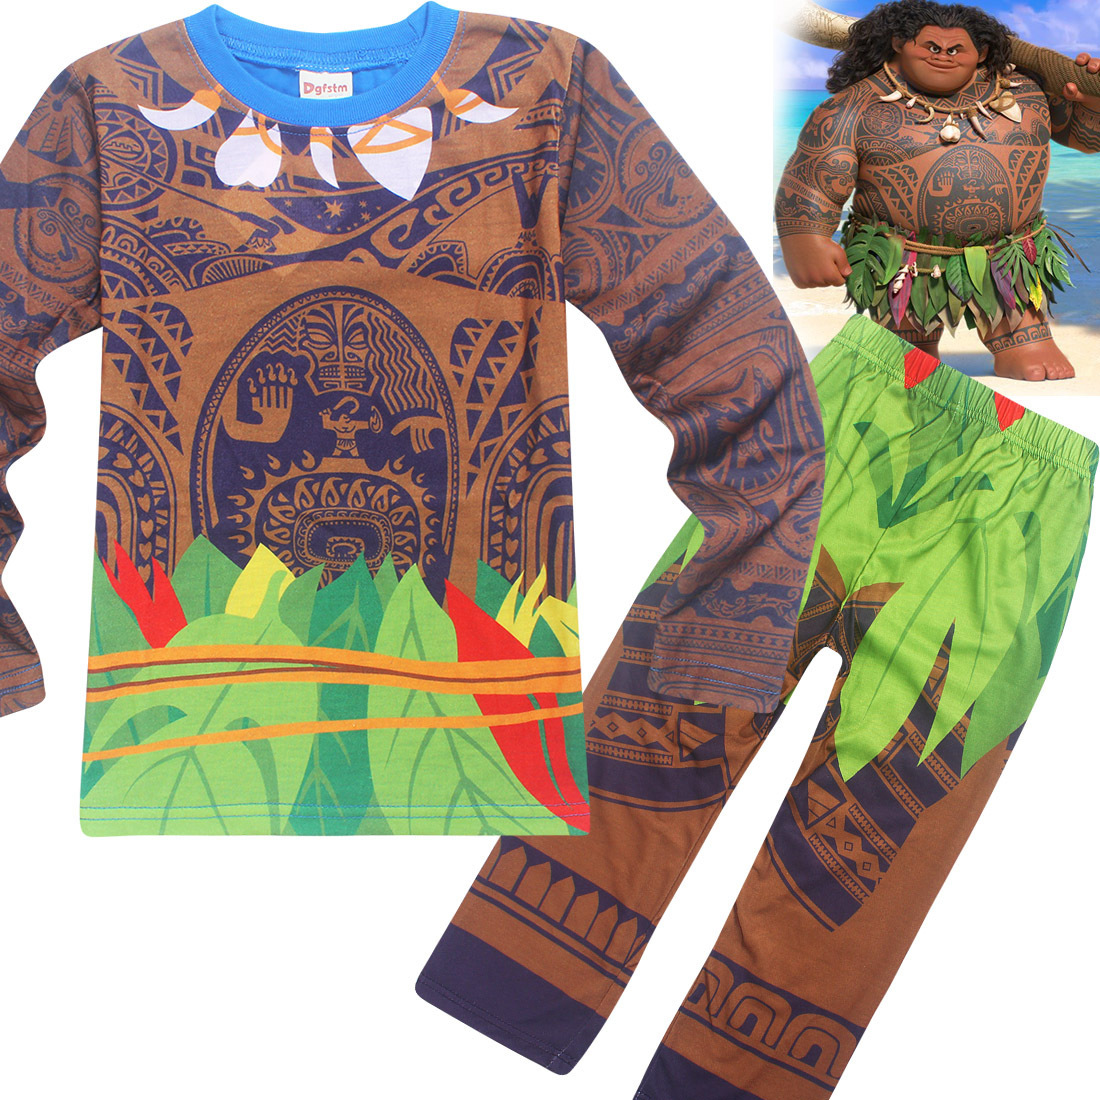 Maui Boys Sleepwear Moana vaiana Costume Girls Pajamas christmas Pyjama Kids Boys Pijamas Long Sleeve T-shirt+Print Clothing Set christmas deer print pajamas sleepwear sets